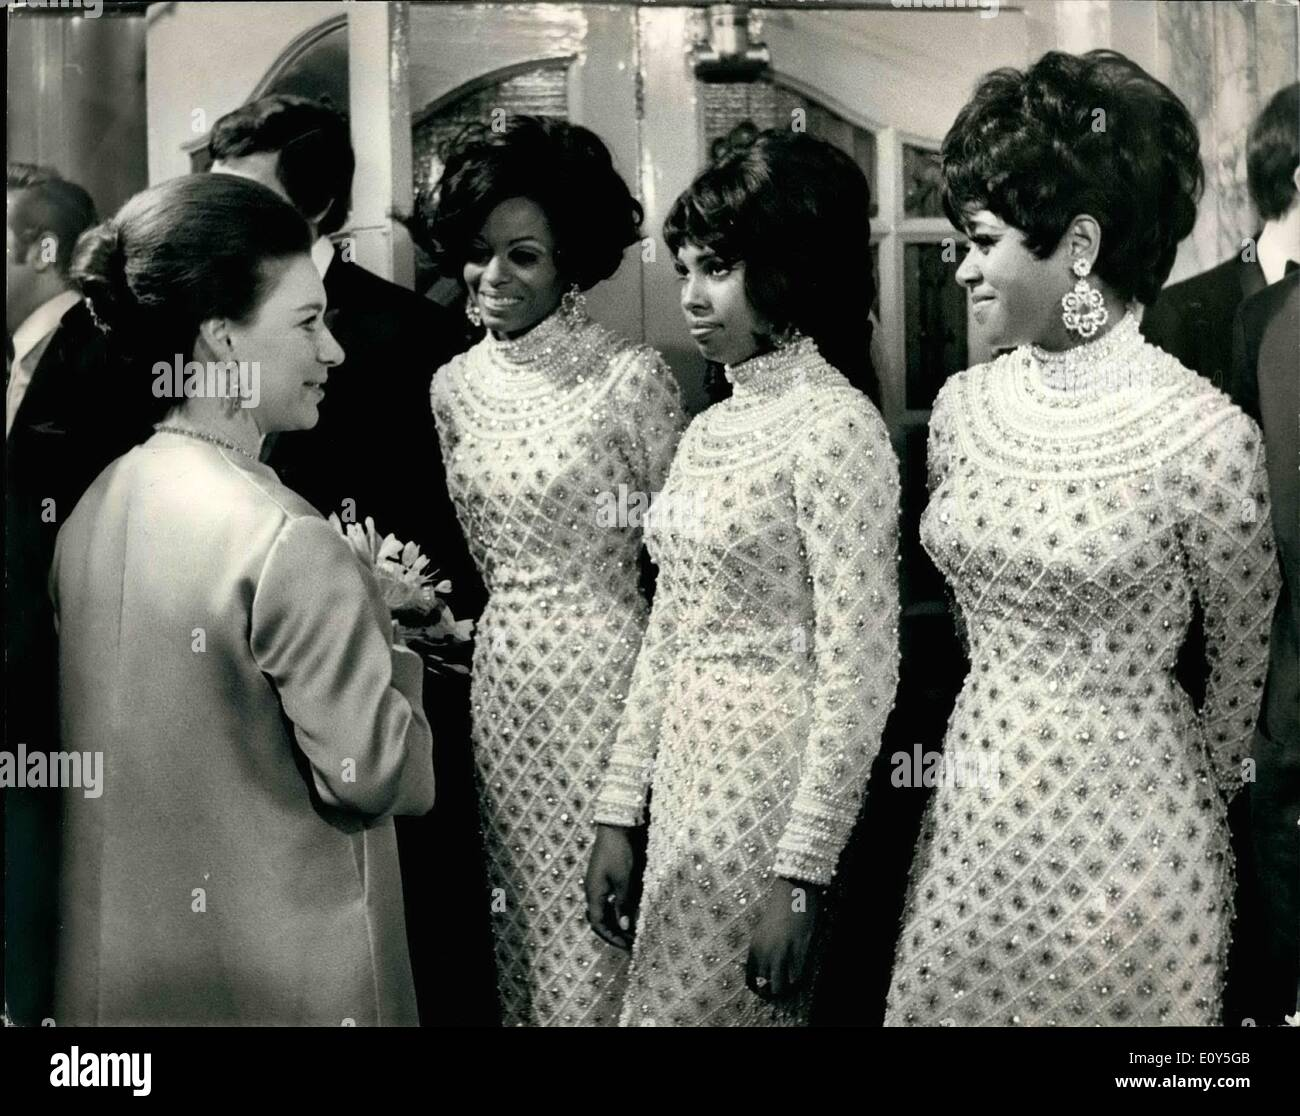 Nov. 11, 1968 - Royals Attend The Royal Variety Performance At The London Palladium: Queen Elizabeth, the Queen Mother, was accompanied by Princess Anne, Prince Charles, Princess Margaret, and her husband, Lord Snowdon, when they attended the royal Variety Performance at the London Palladium this evening in aid of the Variety Artistes 'Benevolent Fund. Photo Shows Princess Margaret seen in conversation with the Supremes pop group after the show. - Stock Image